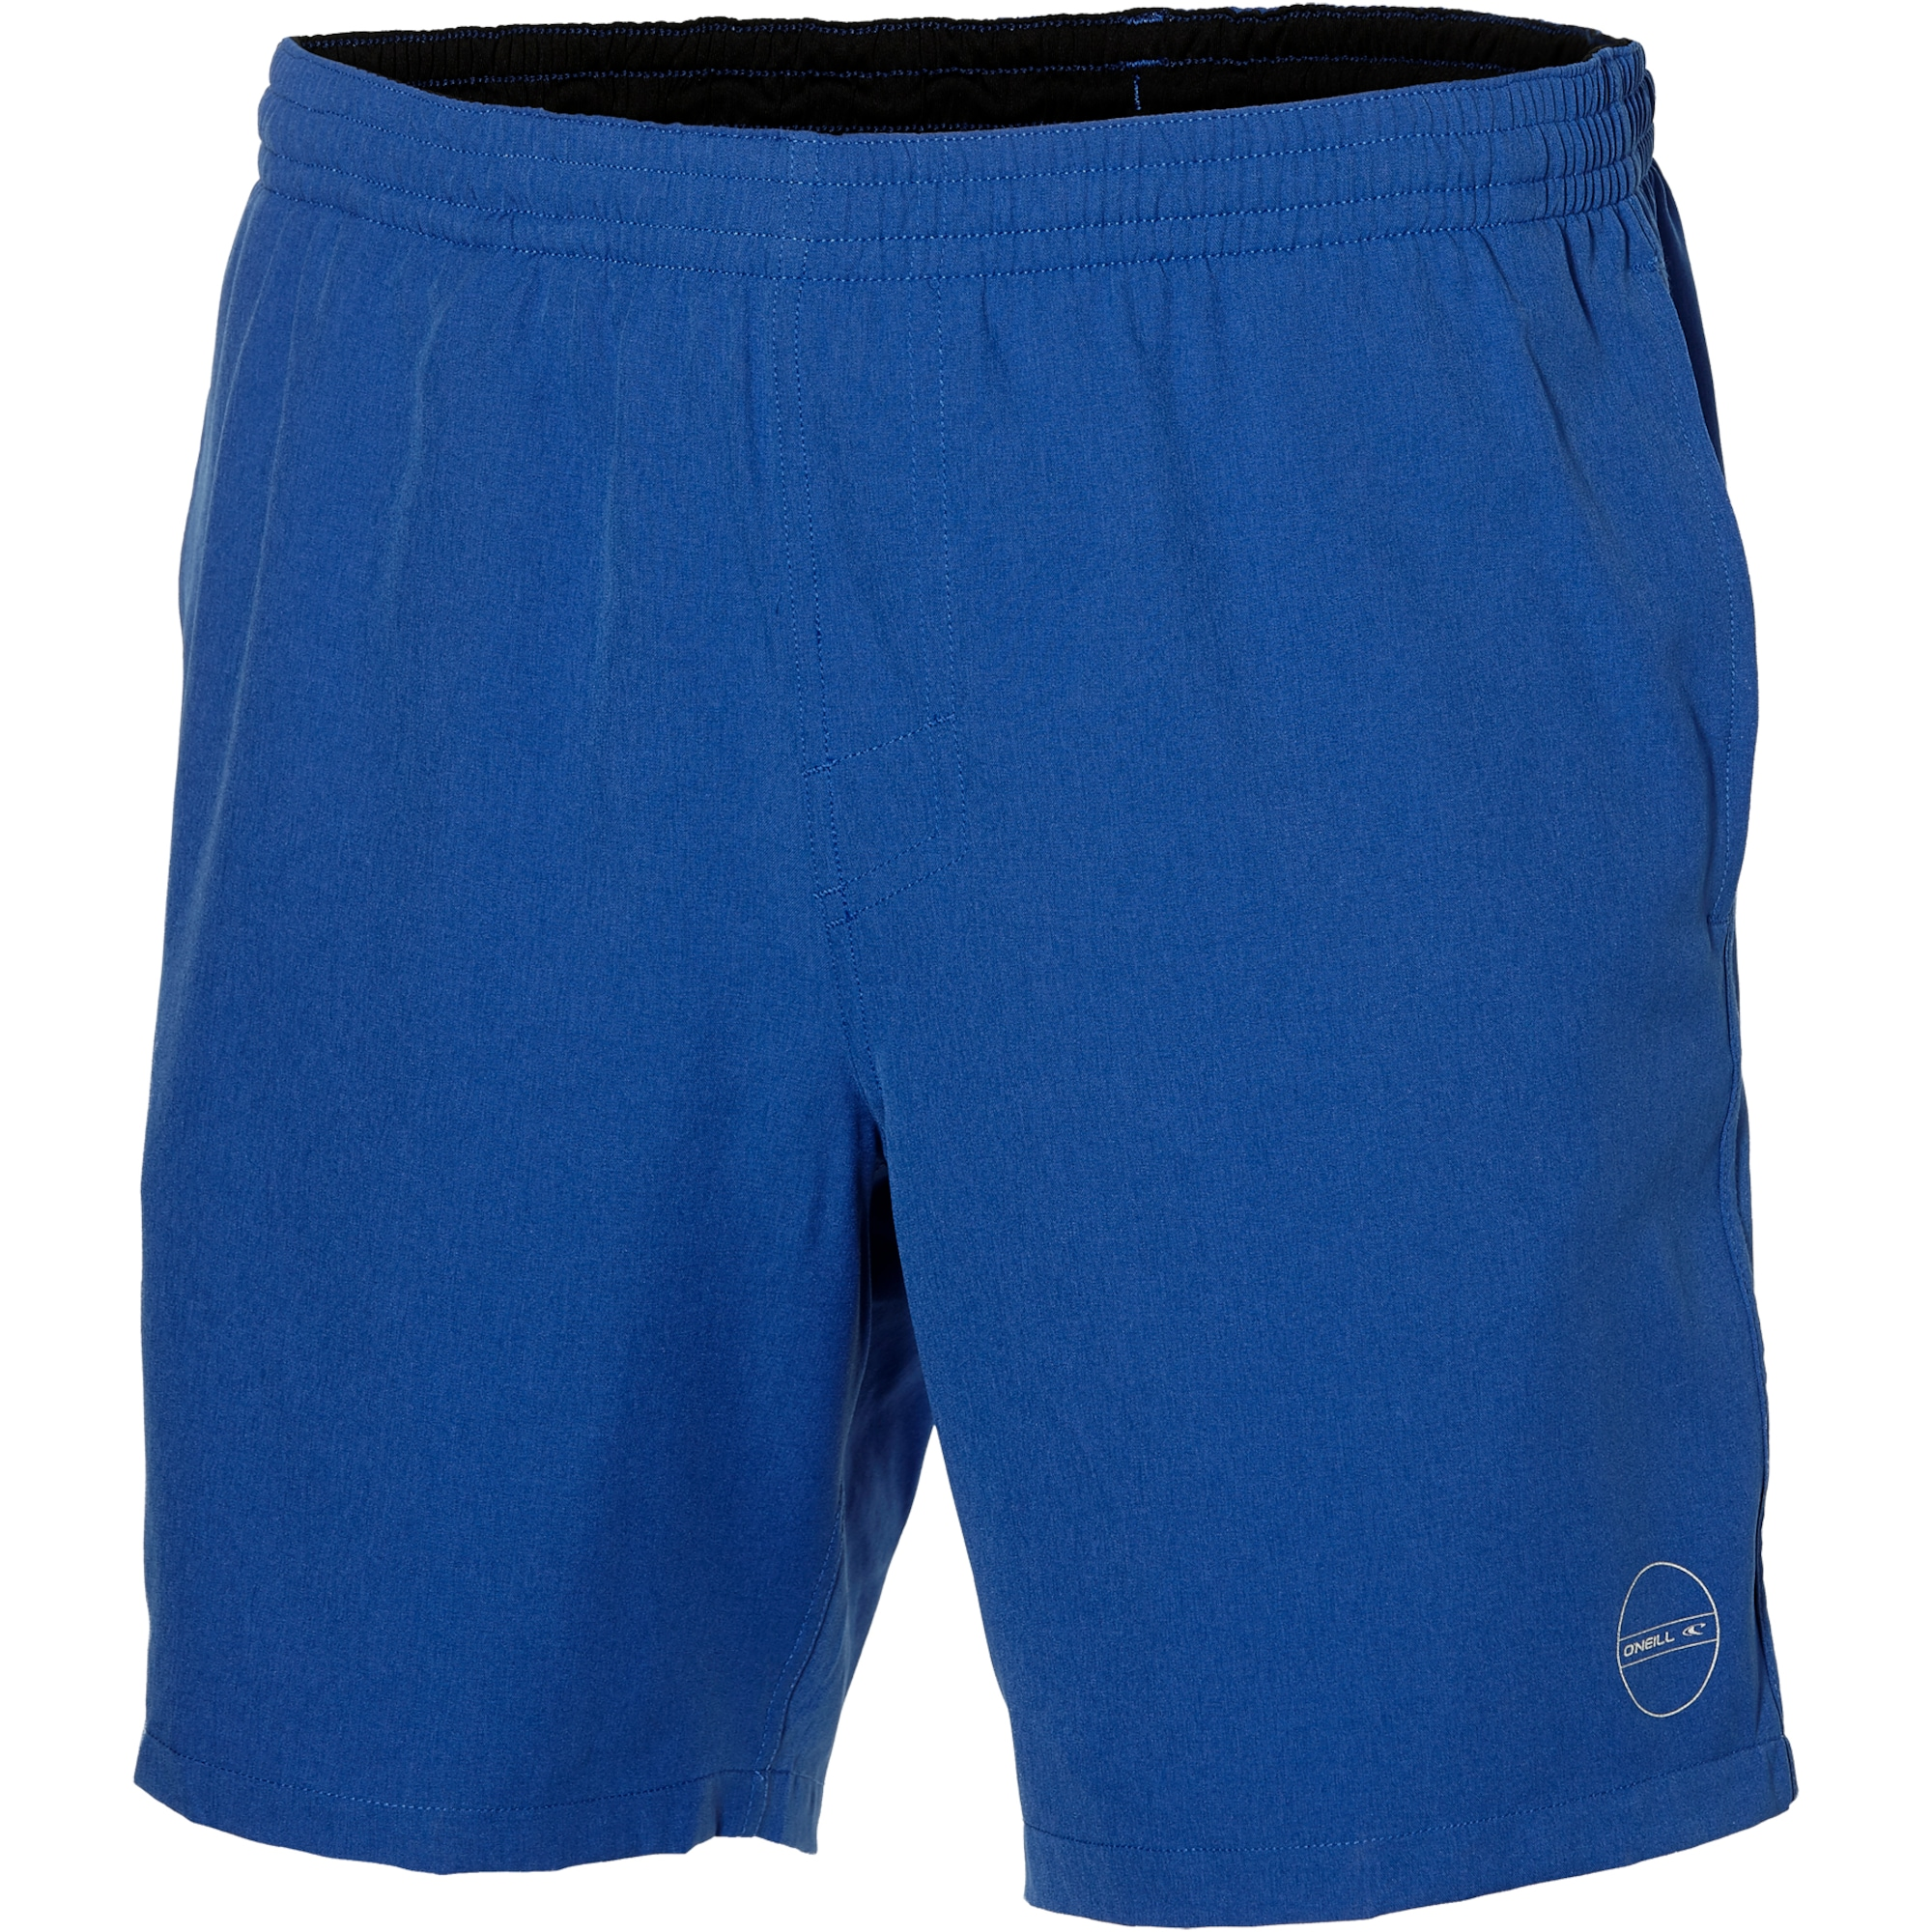 ONEILL Šortky PM ALL DAY HYBRID SHORTS modrá O'NEILL